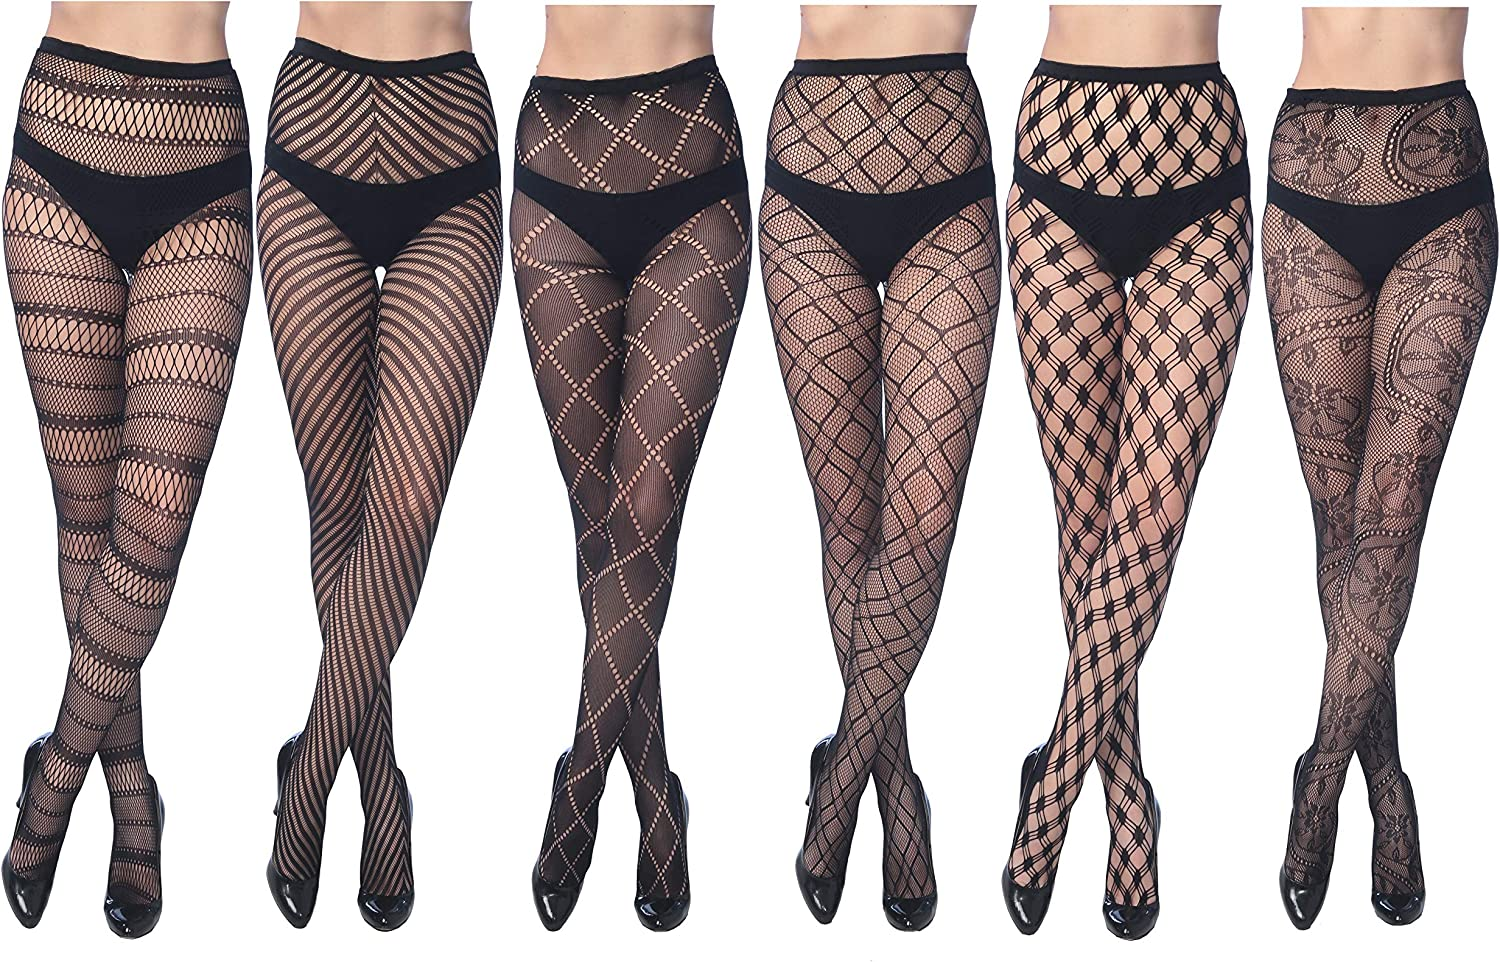 Frenchic Fishnet Women's Lace Stockings Tights Sexy Pantyhose Regular &  Plus Sizes (Pack of 6) at Amazon Women's Clothing store